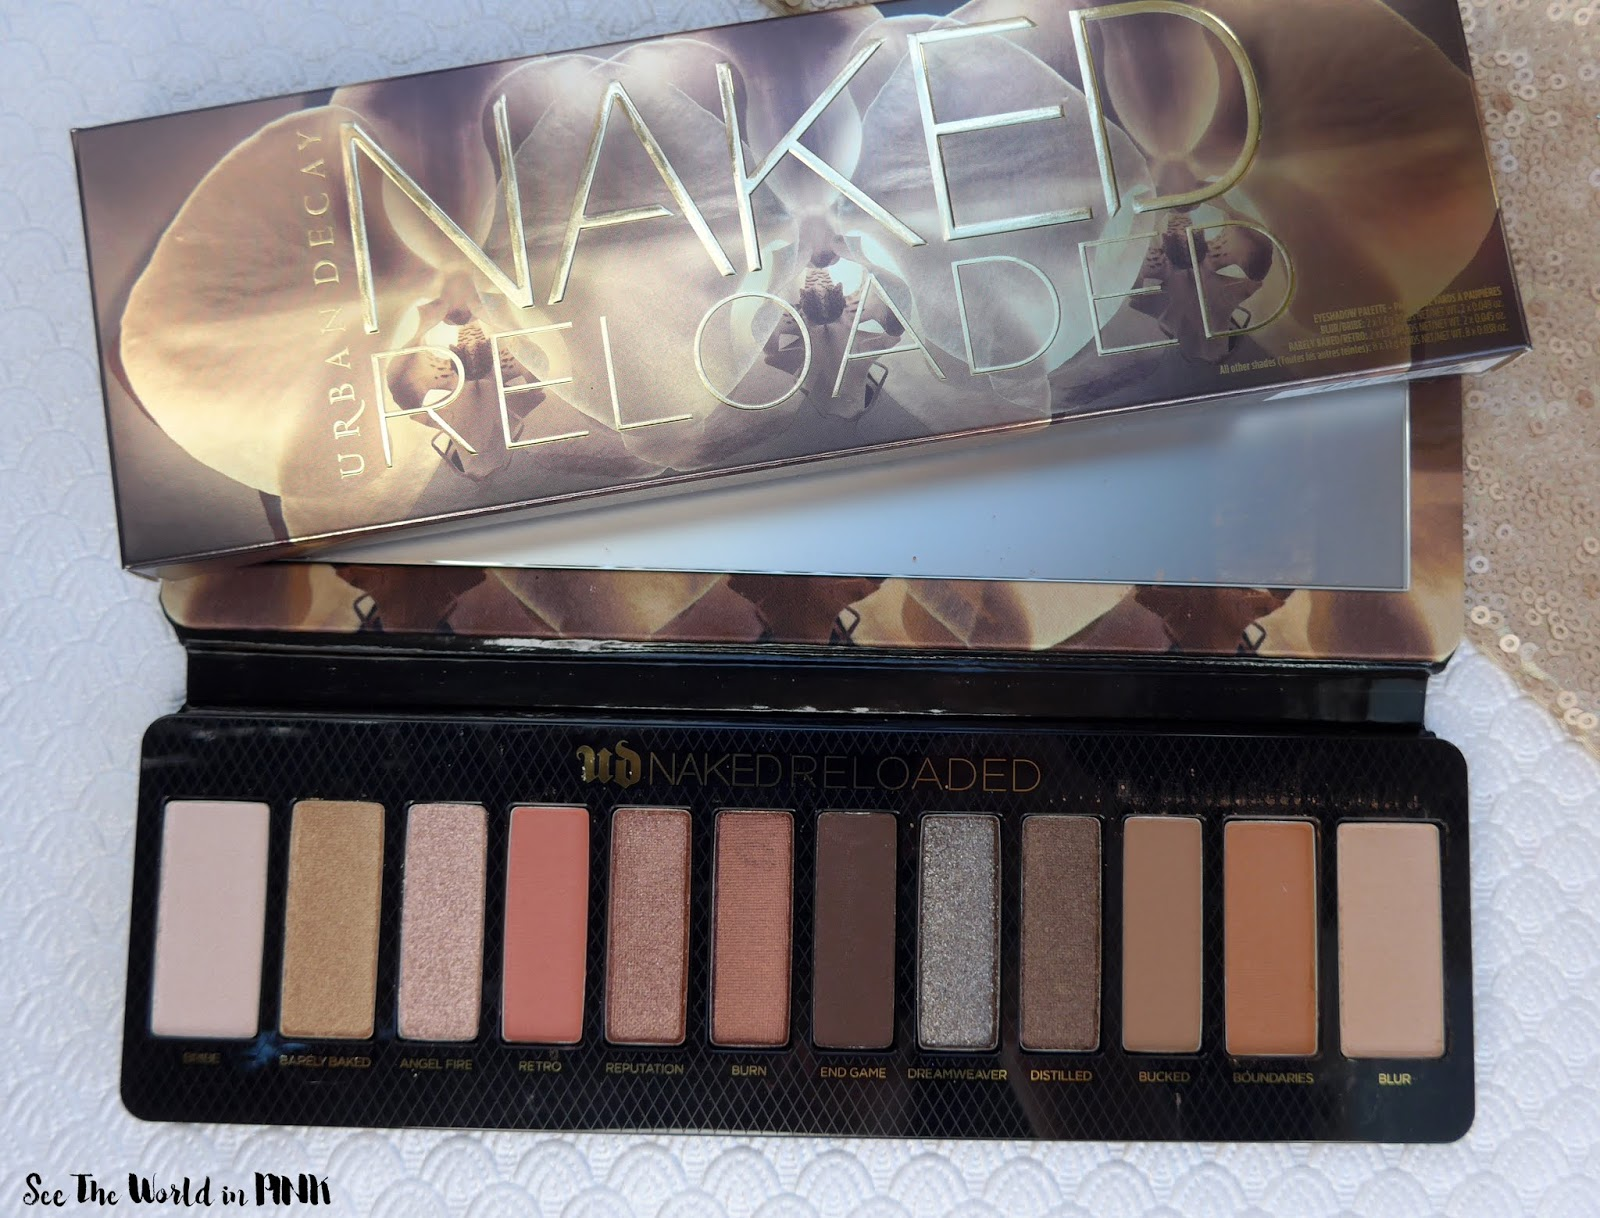 Urban Decay Naked Reloaded Palette - Swatches, Look and Thoughts!